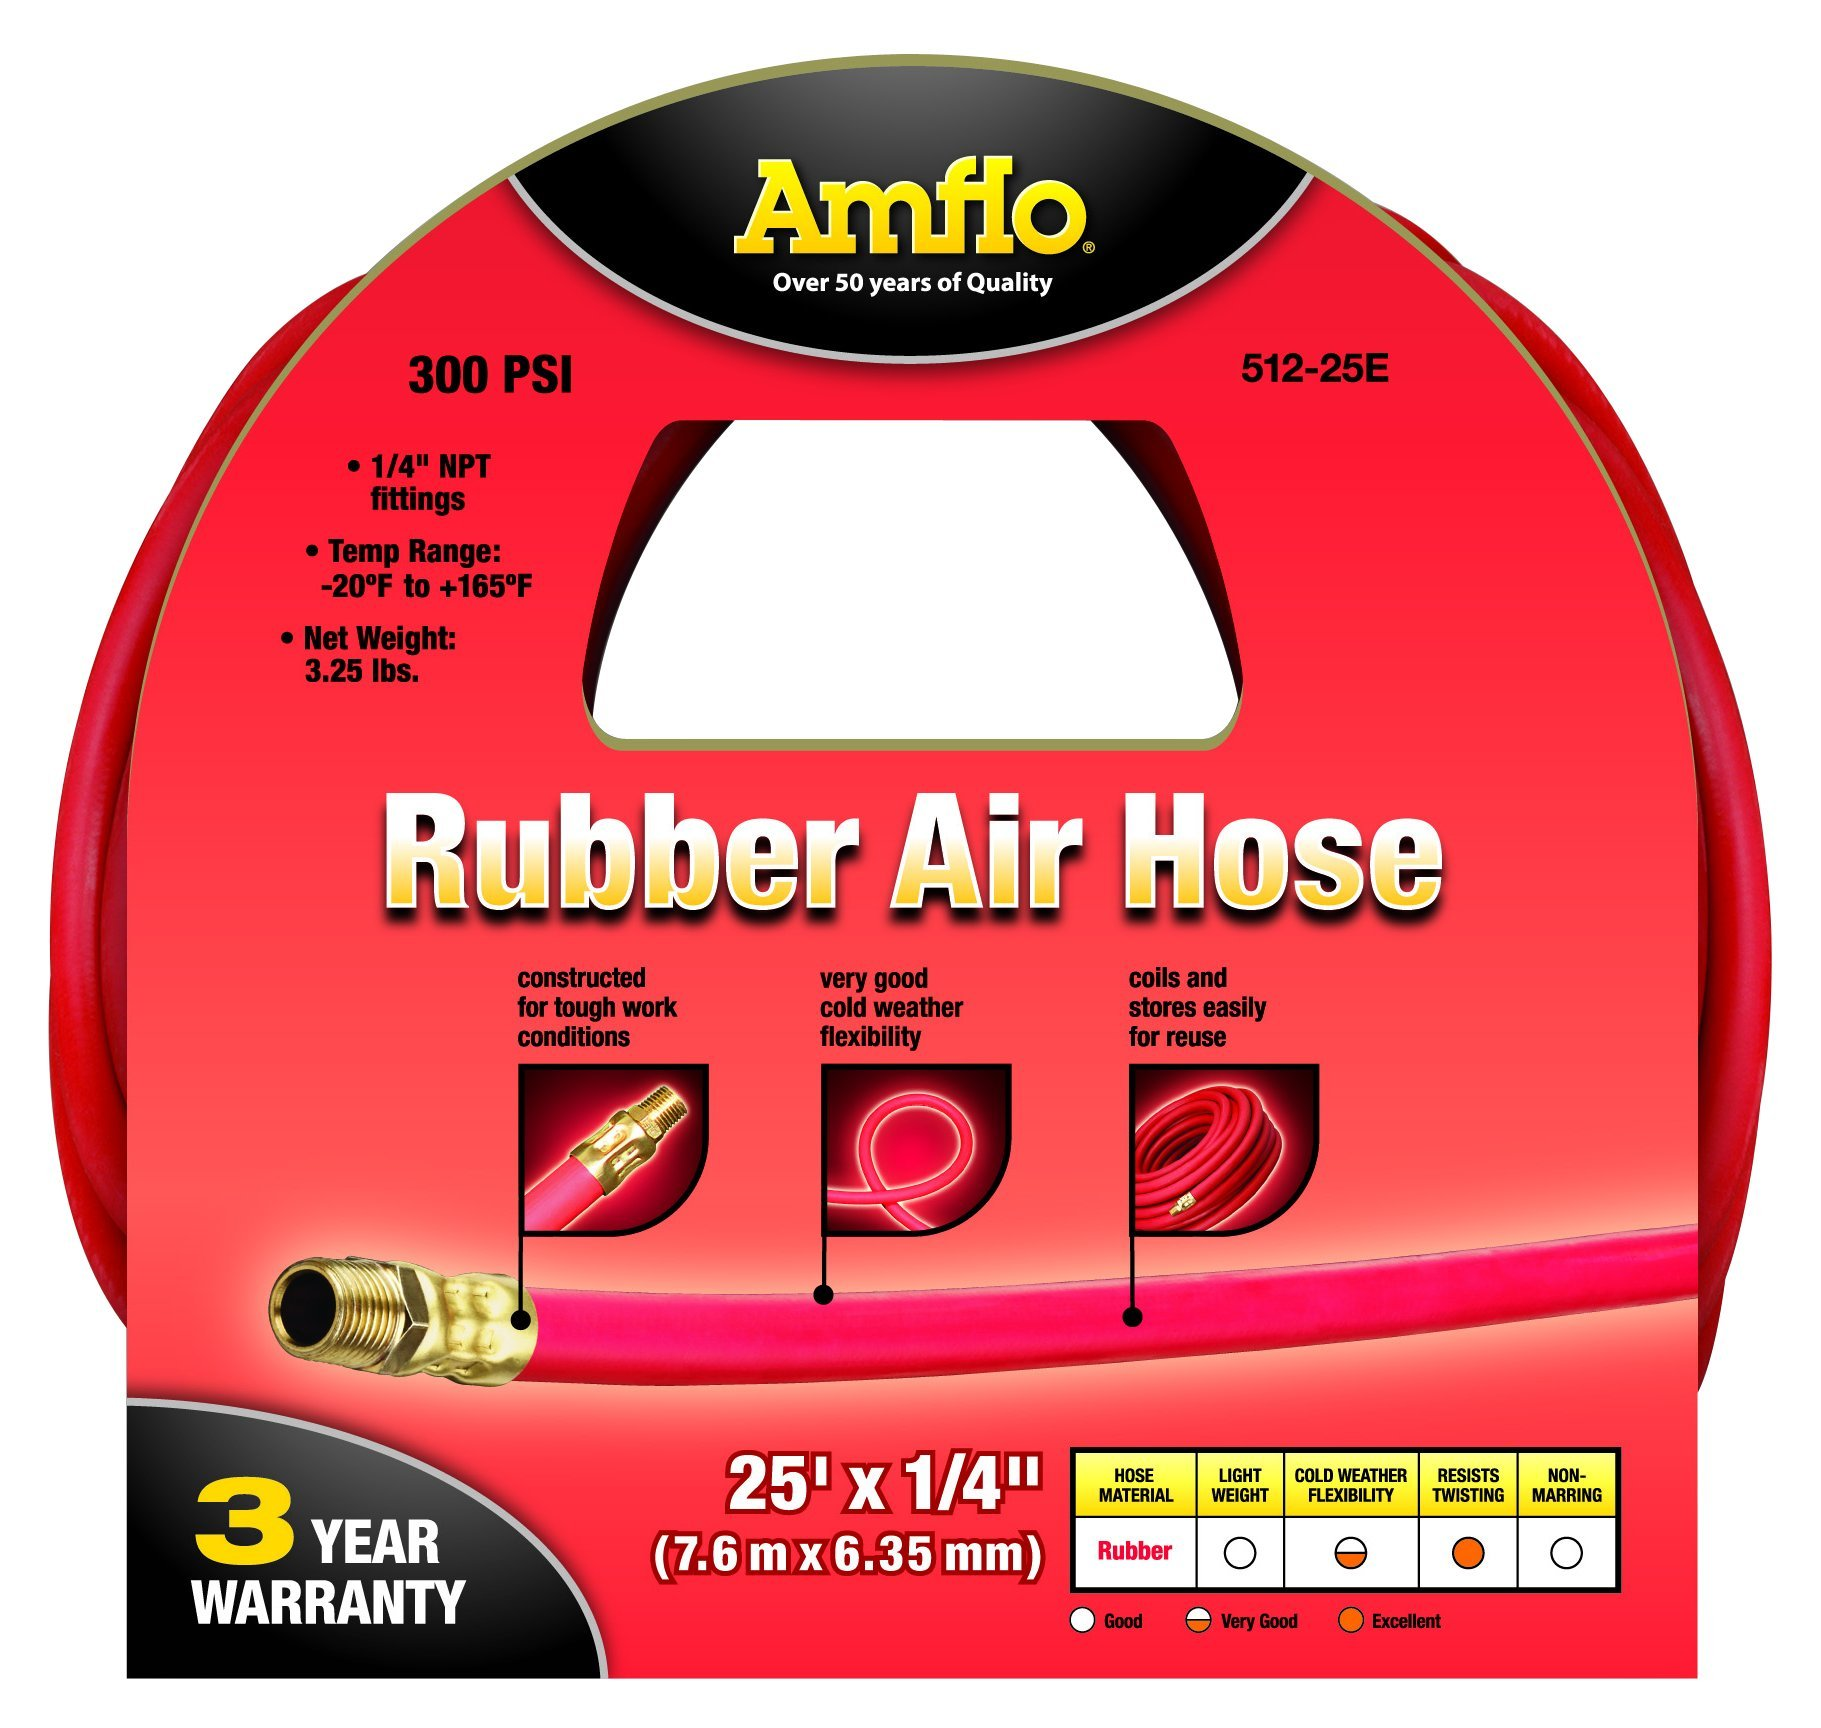 Amflo 512-25E Red 300 PSI Rubber Air Hose 1/4'' x 25' With 1/4'' MNPT End Fittings by Amflo (Image #2)